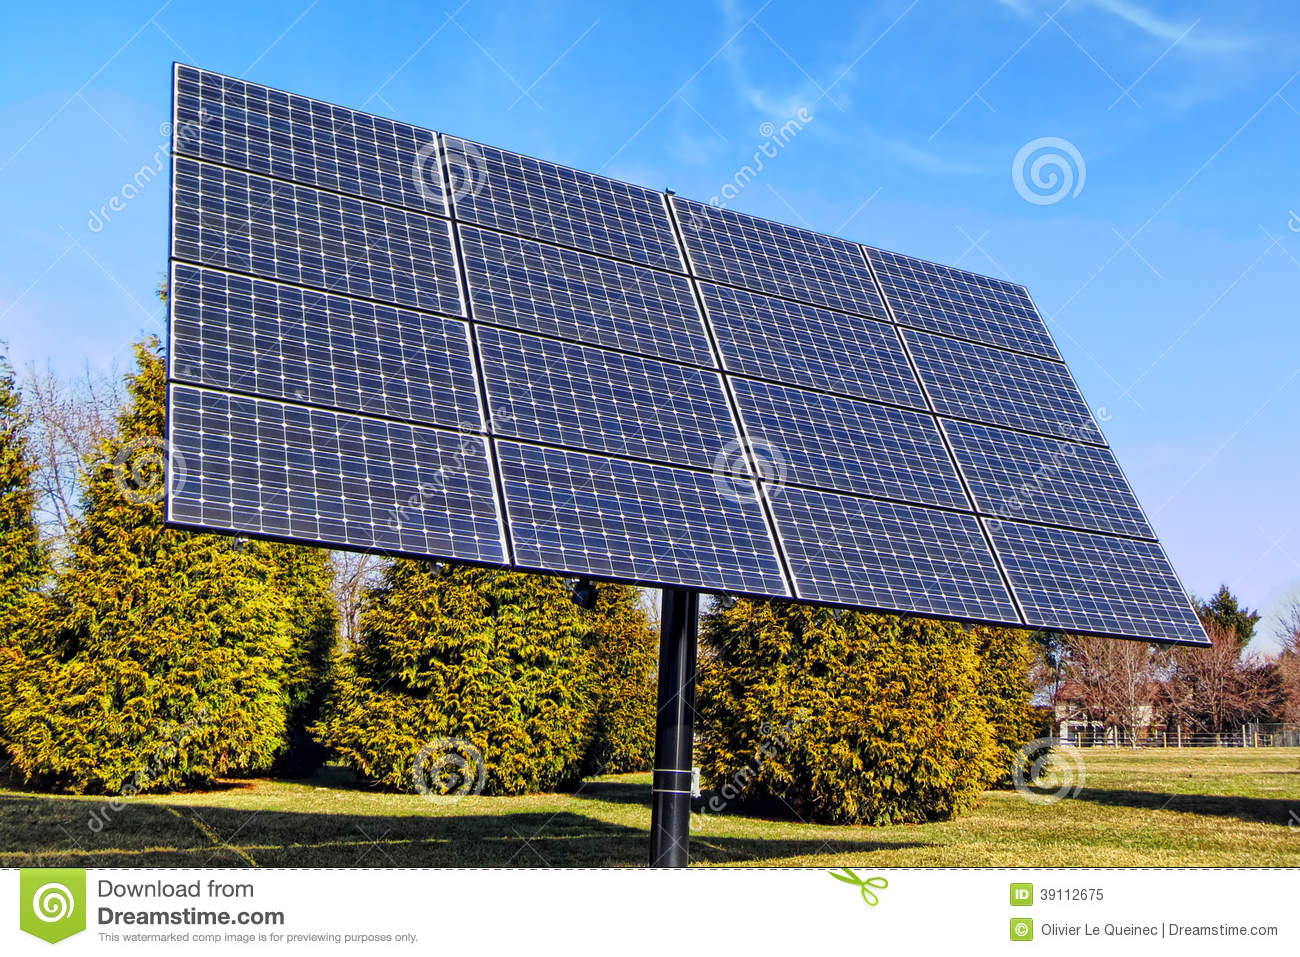 Photovoltaic Electrical Energy Solar Panels Array Stock Image ... on battery solar panels, thermal solar panels, circuit solar panels, power solar panels, electric current solar panels, alternating current solar panels, fossil fuel solar panels,